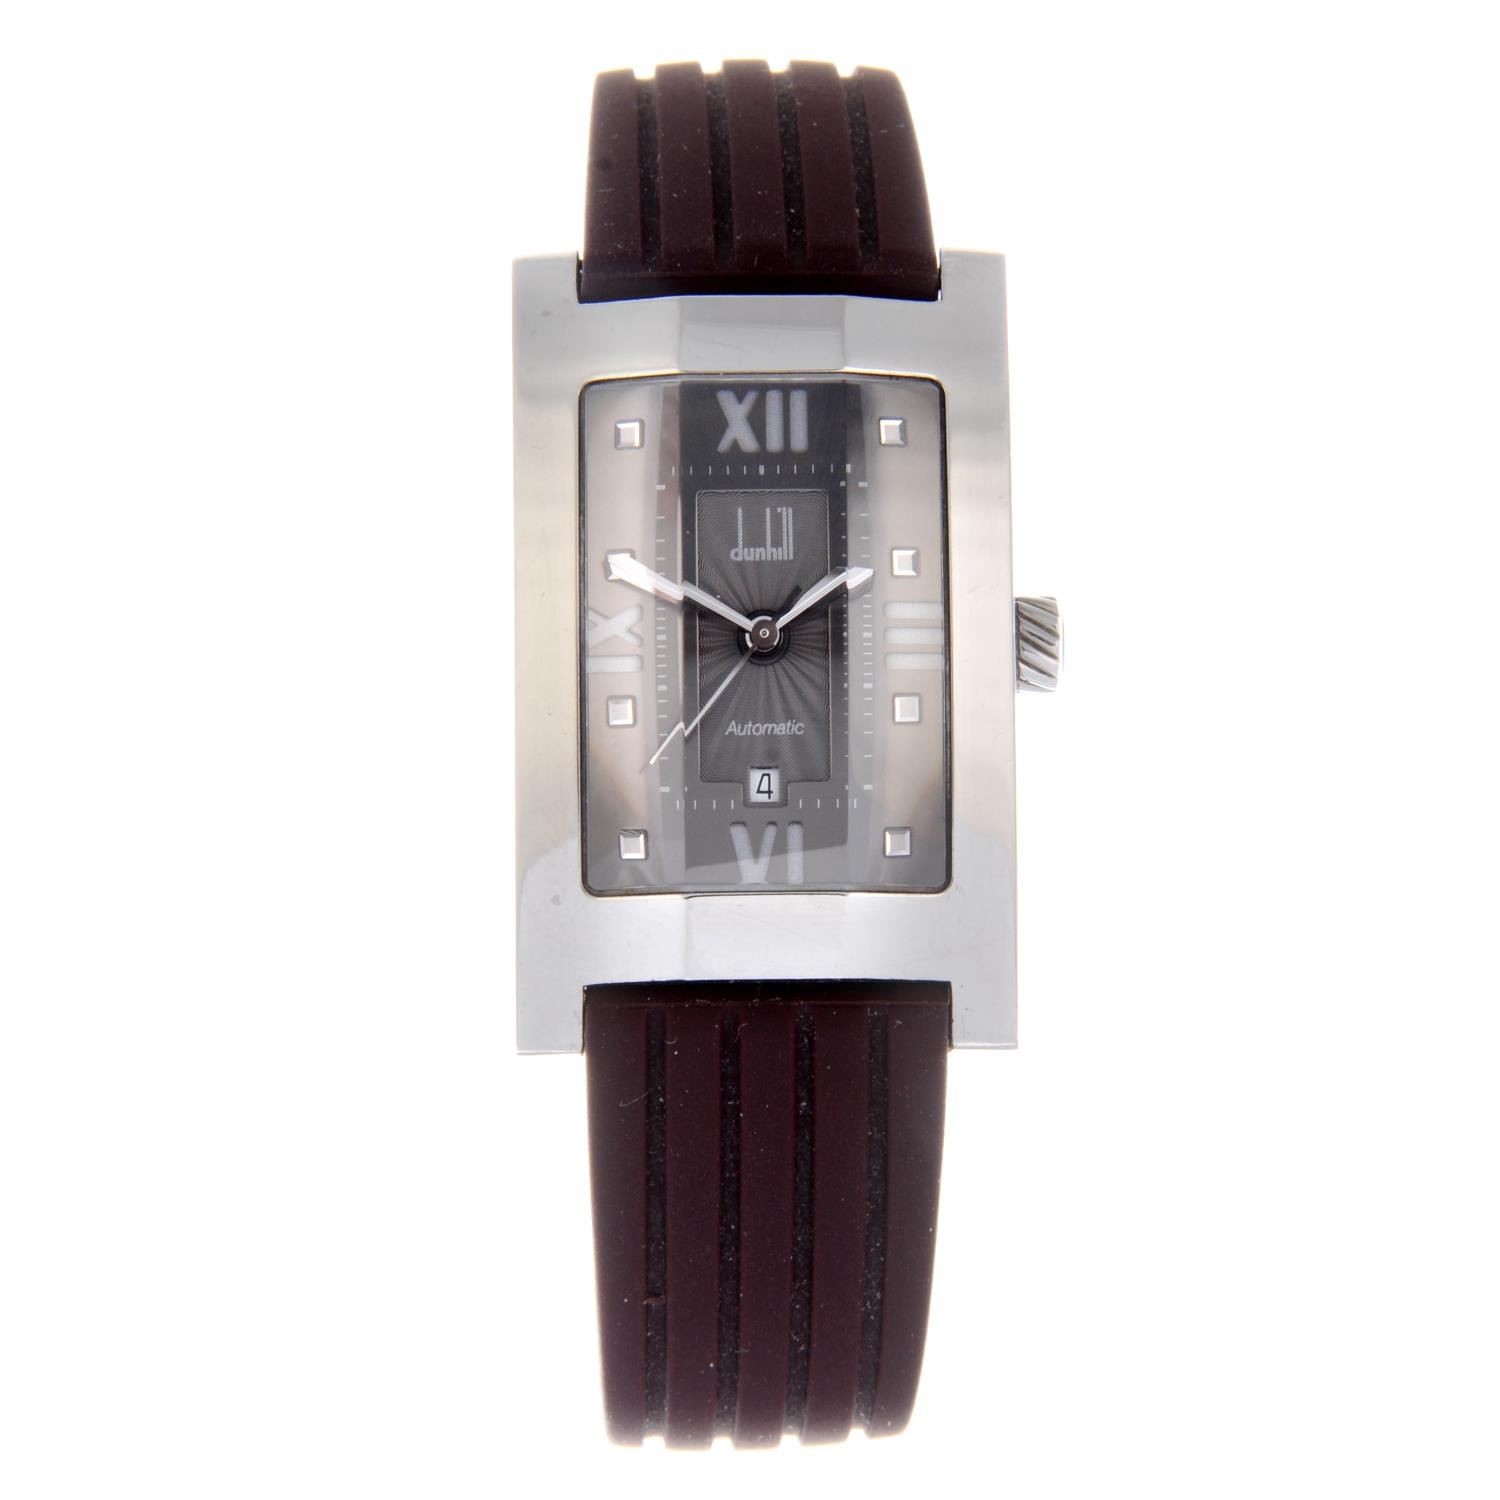 Lot 37 - DUNHILL - a limited edition mid-size Millennium wrist watch.